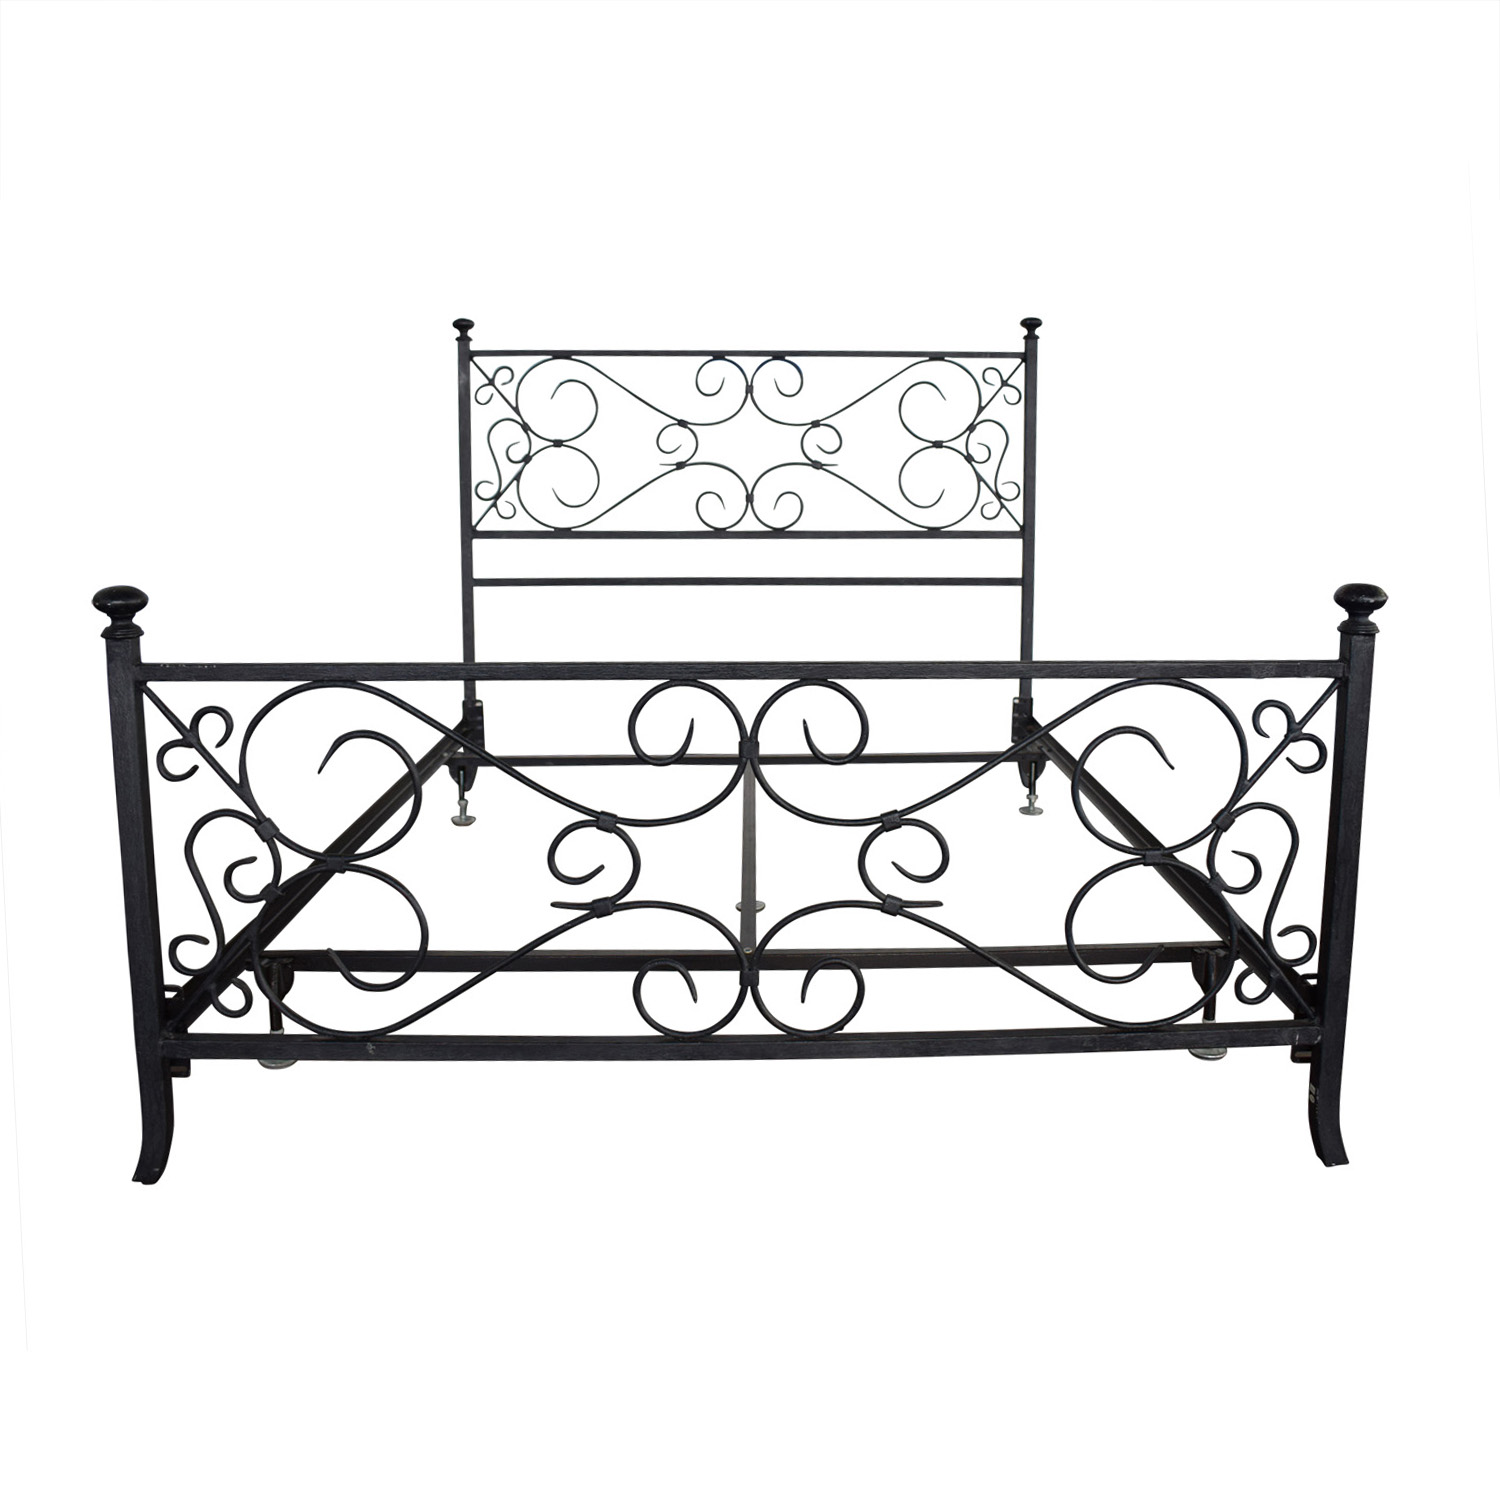 Pottery Barn Pottery Barn Wrought Iron Queen Bedframe nj